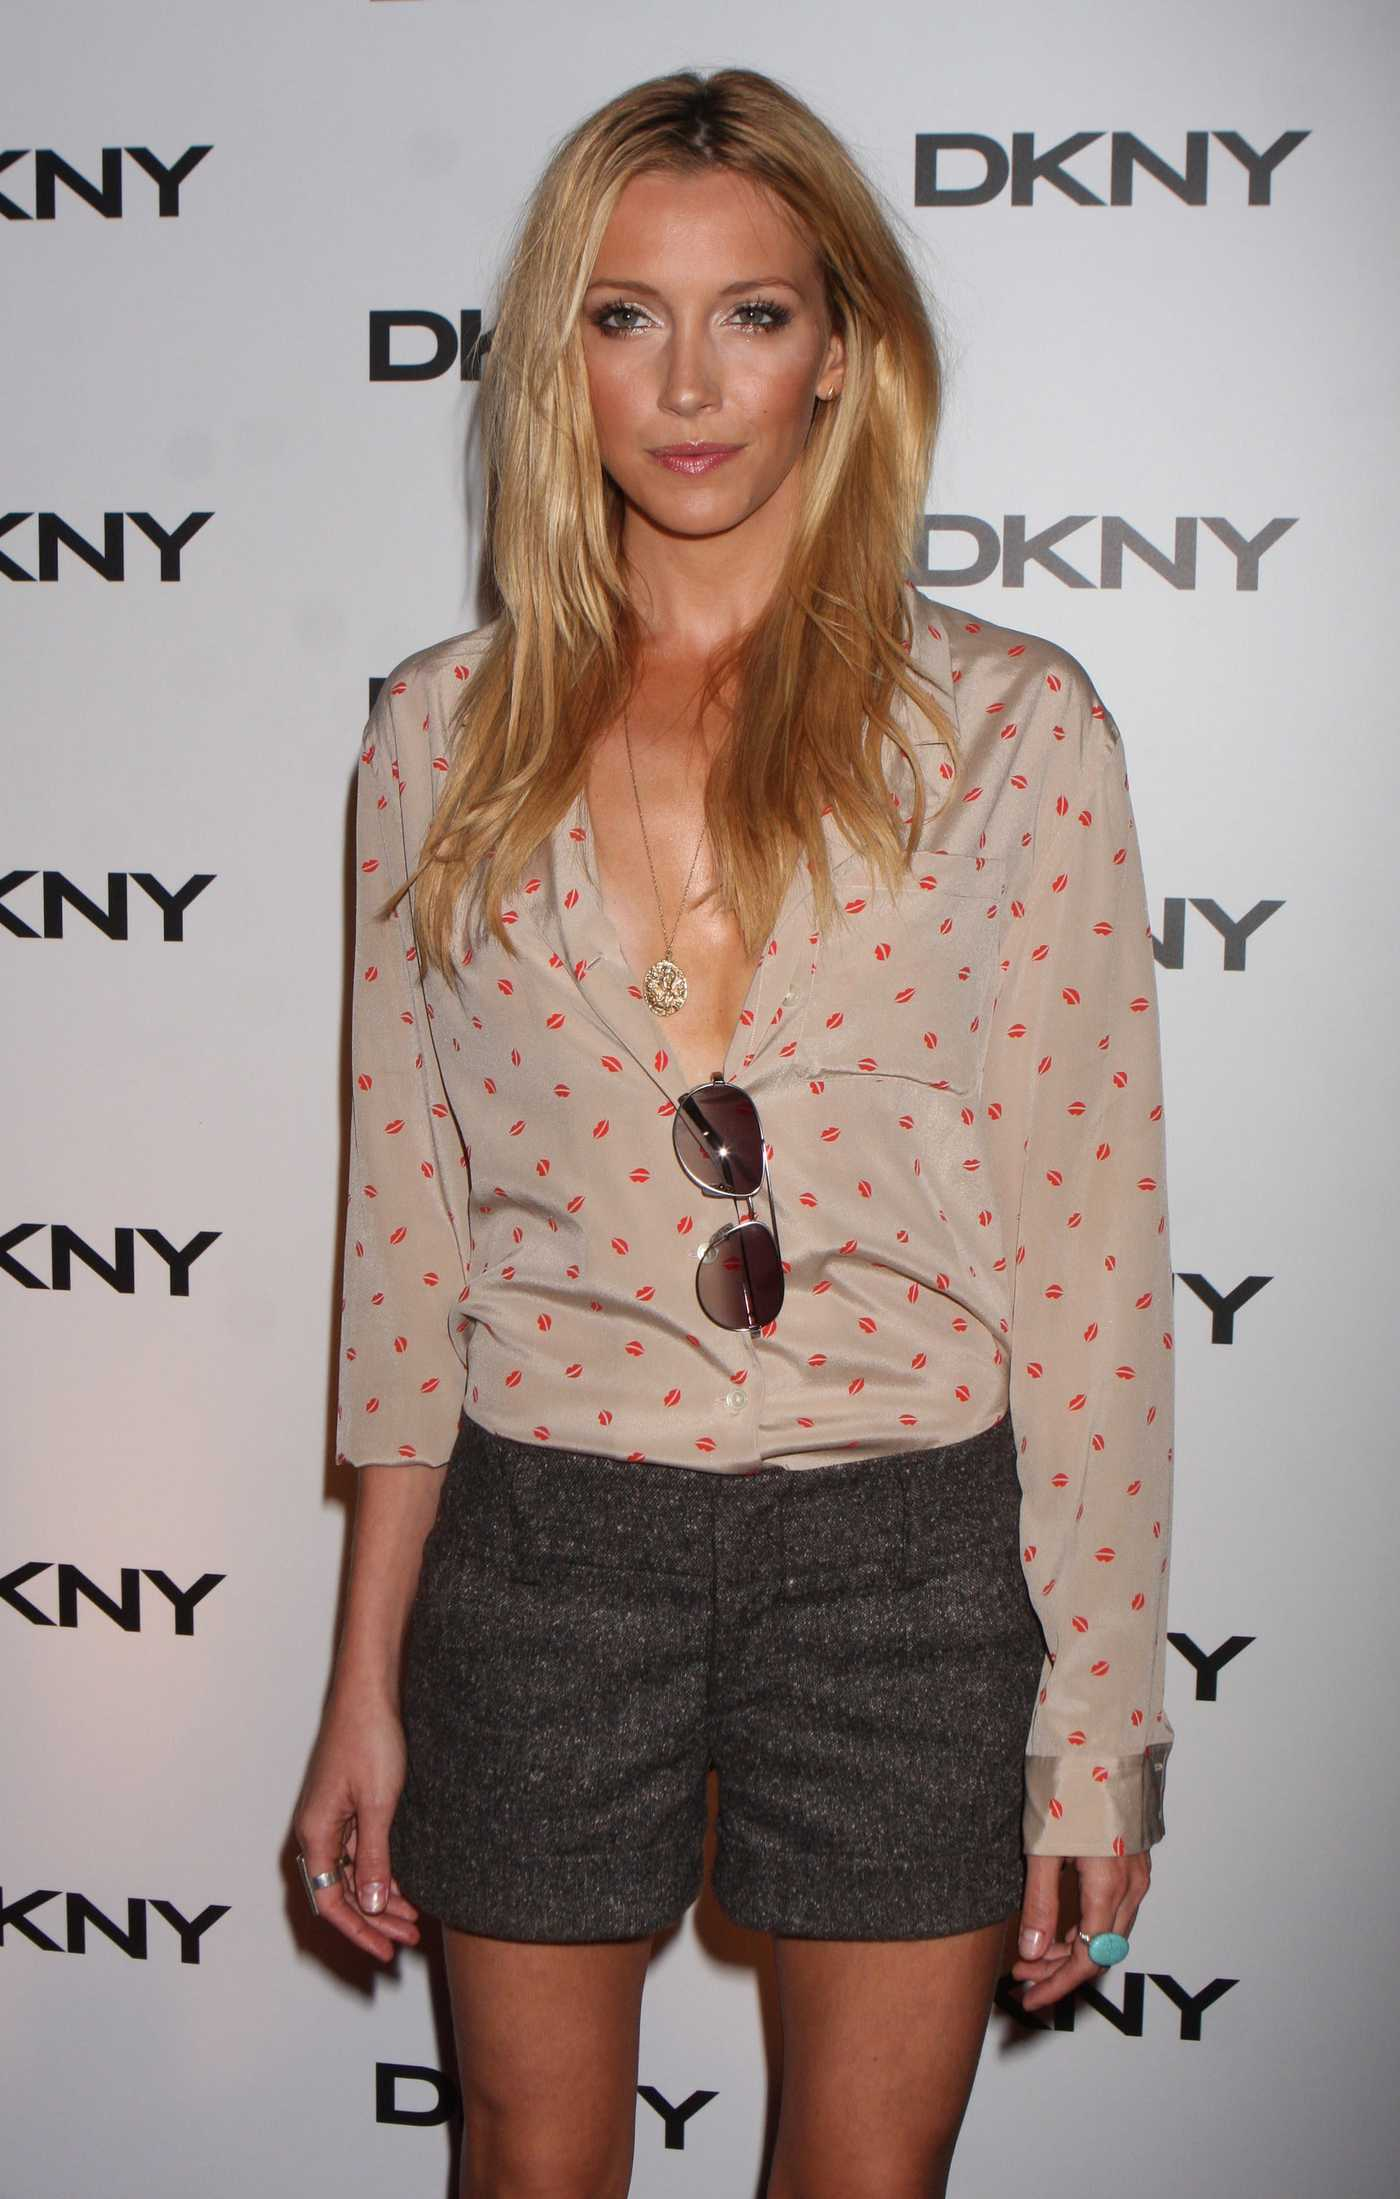 Katie Cassidy DKNY Sun Soiree at The Beach